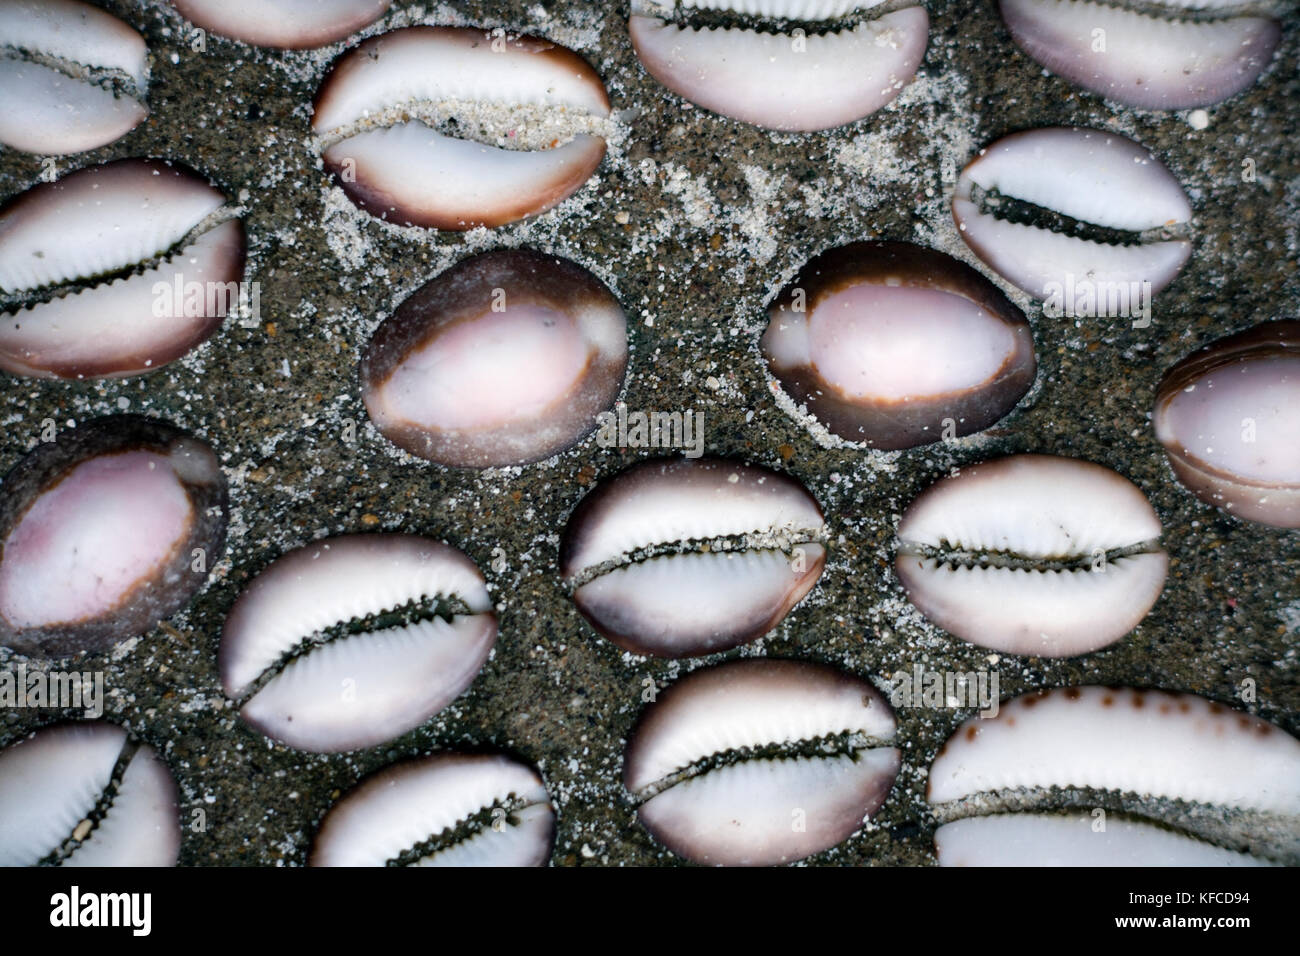 INDONESIA, Mentawai Islands, close-up of Cowrie Shells - Stock Image